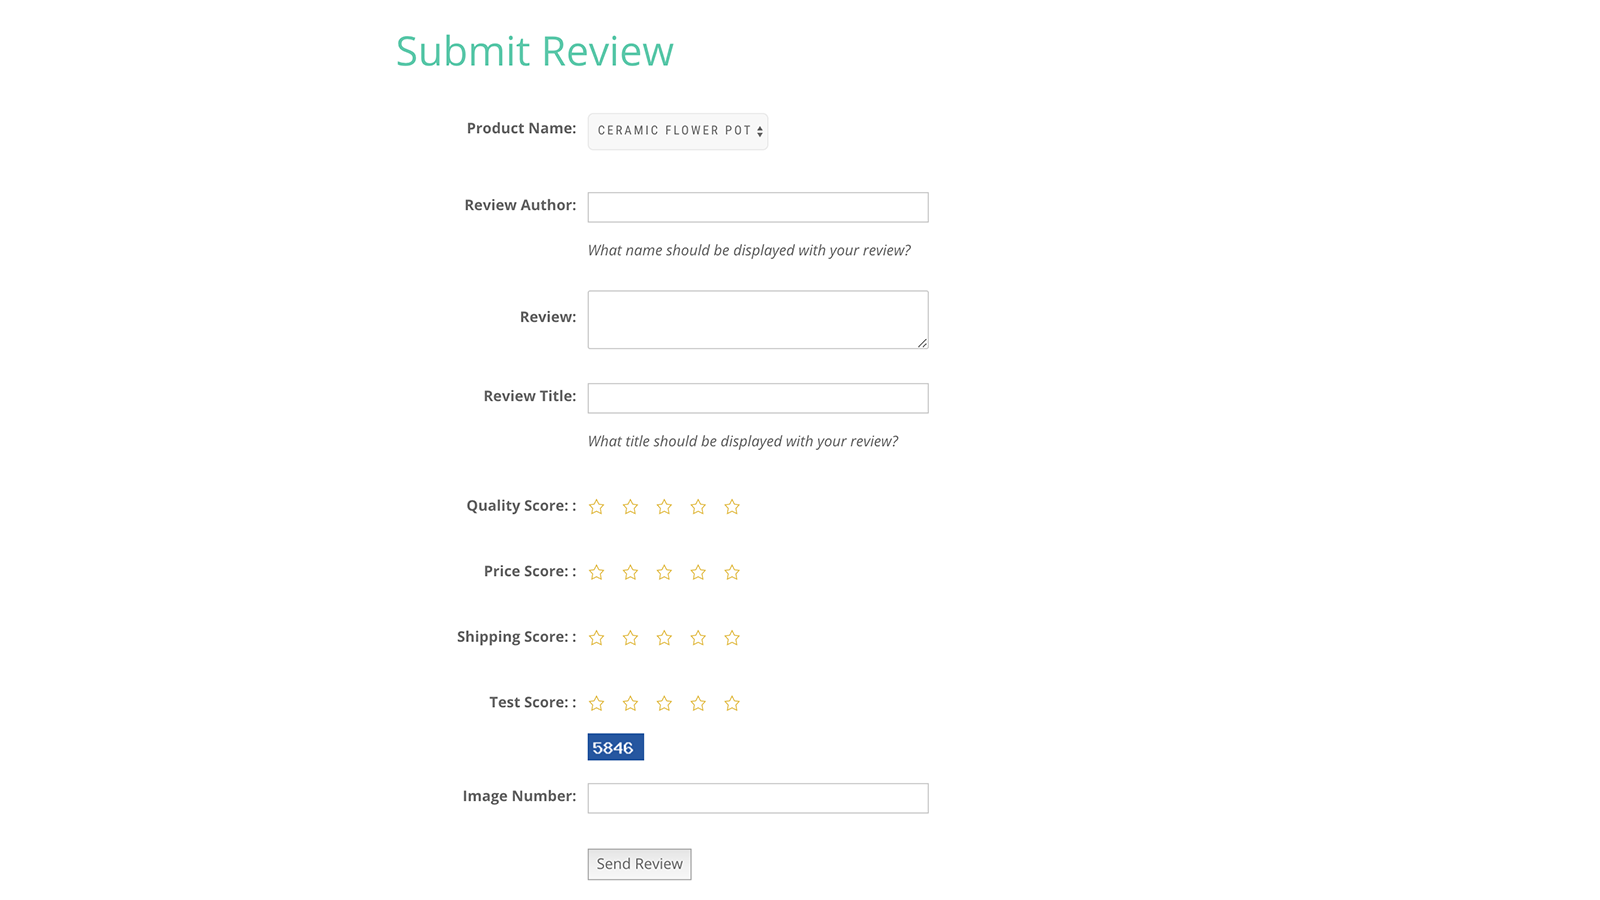 Submit Review Form